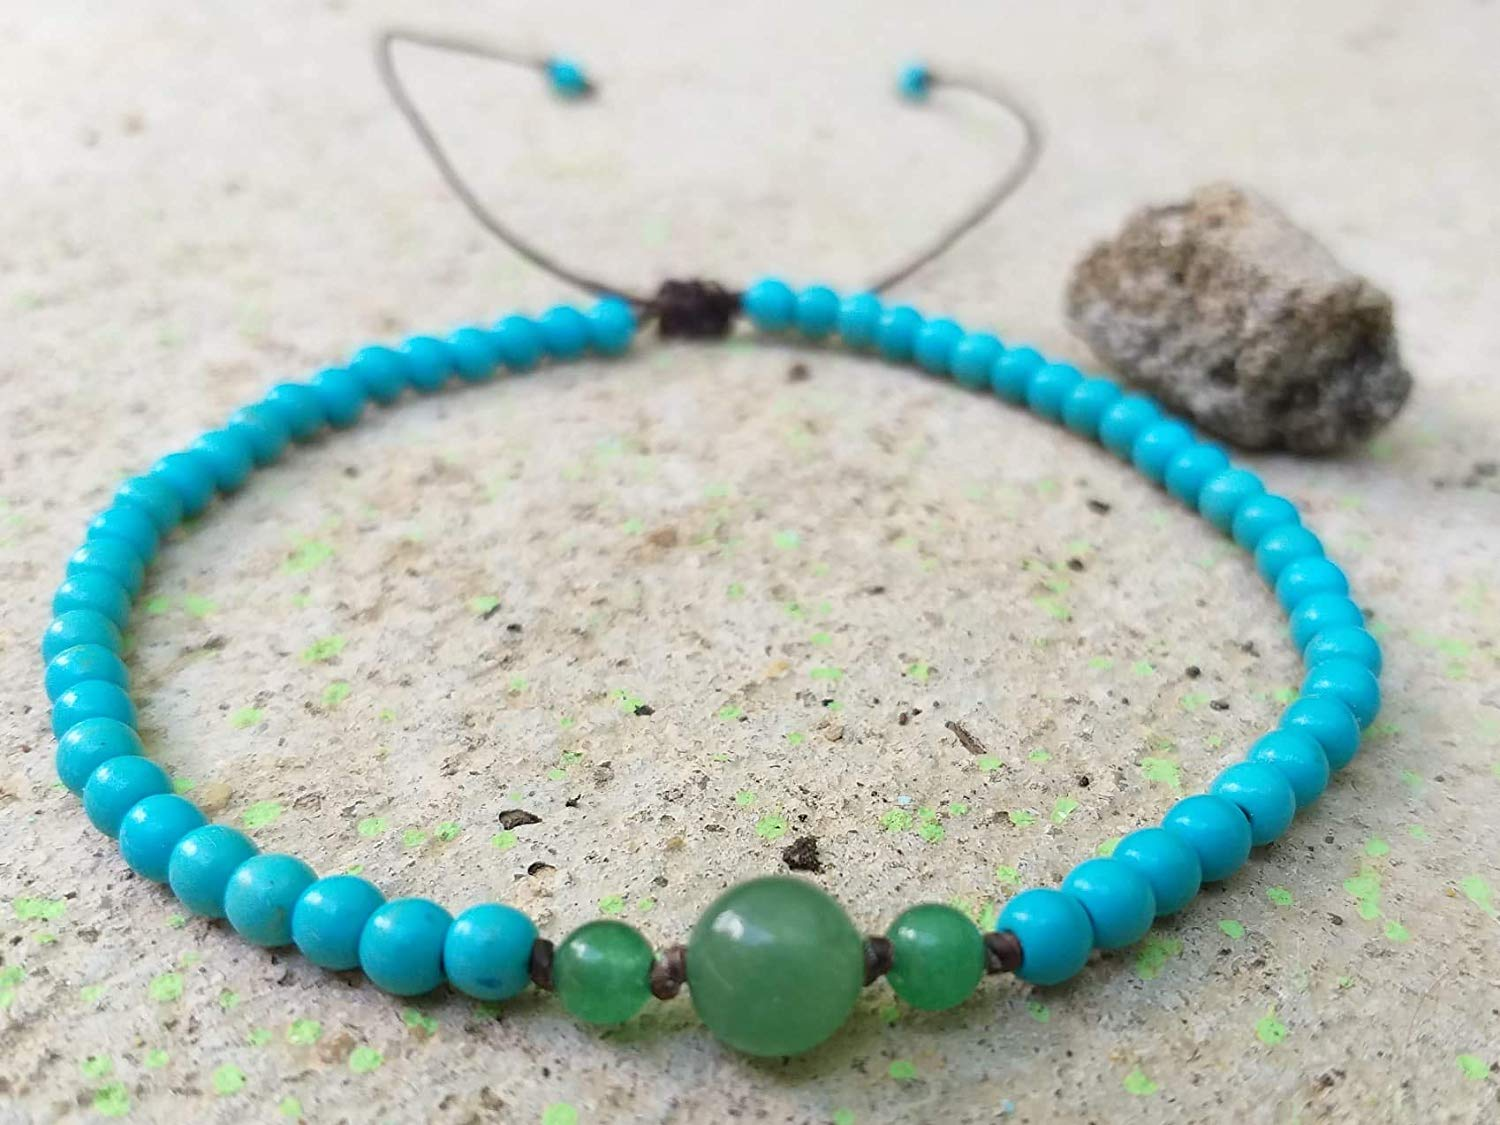 Anklets,Turquoise stone anklets,Green jade stone anklets,It is fashionable for both women,Use as a gift.